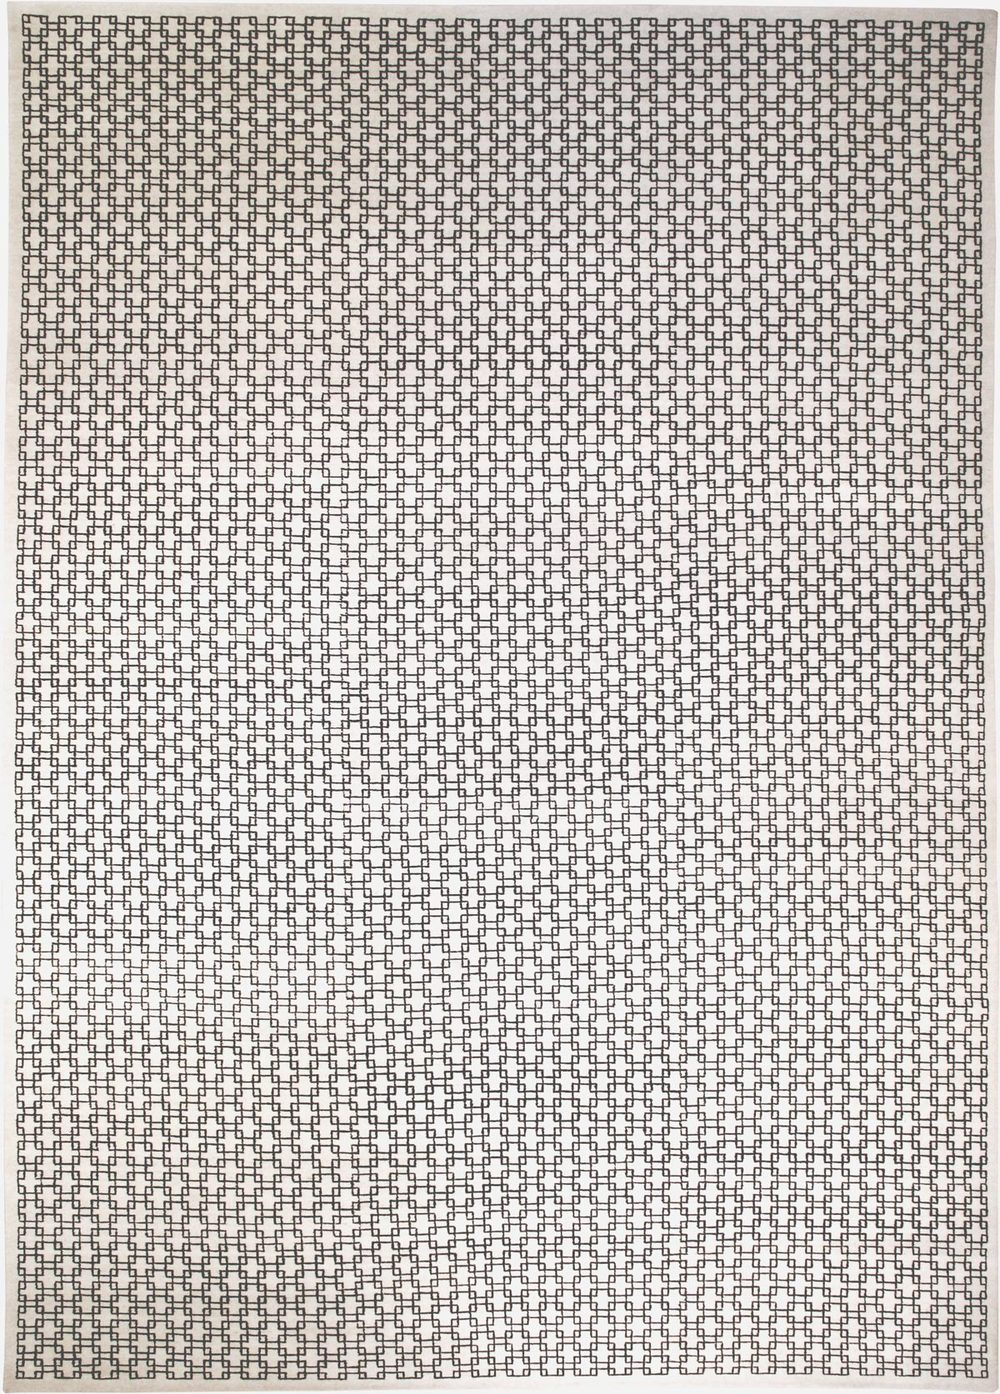 Floating tile is a geometric design of interlocking square shapes. Woven in all wool.